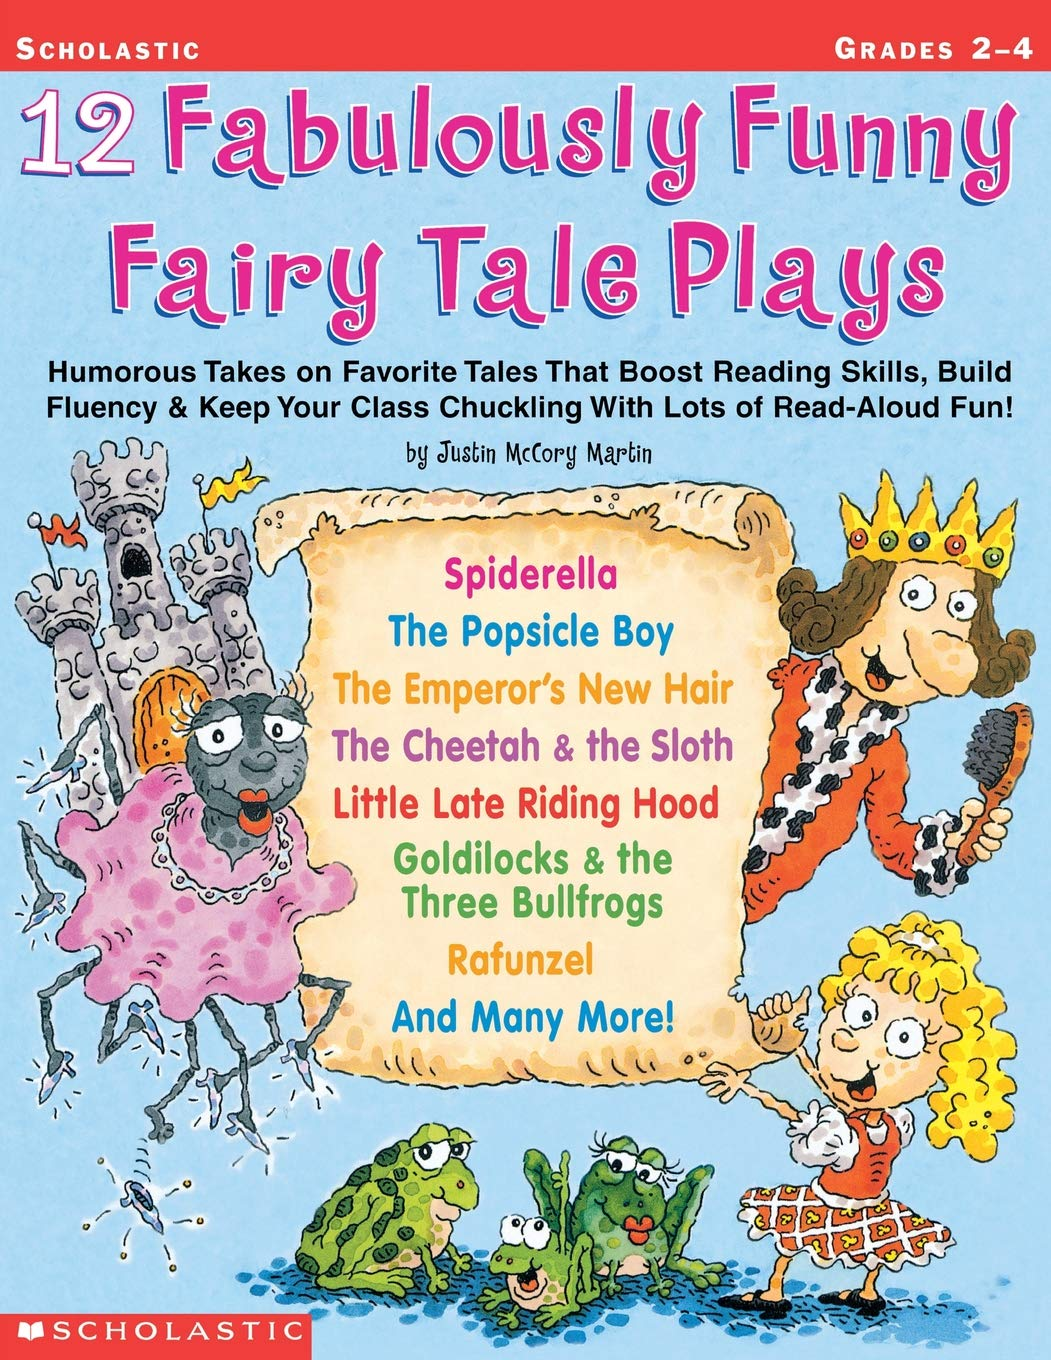 Download 12 Fabulously Funny Fairy Tale Plays: Humorous Takes on Favorite Tales That Boost Reading Skills, Build Fluency & Keep Your Class Chuckling With Lots of Read-Aloud Fun! pdf